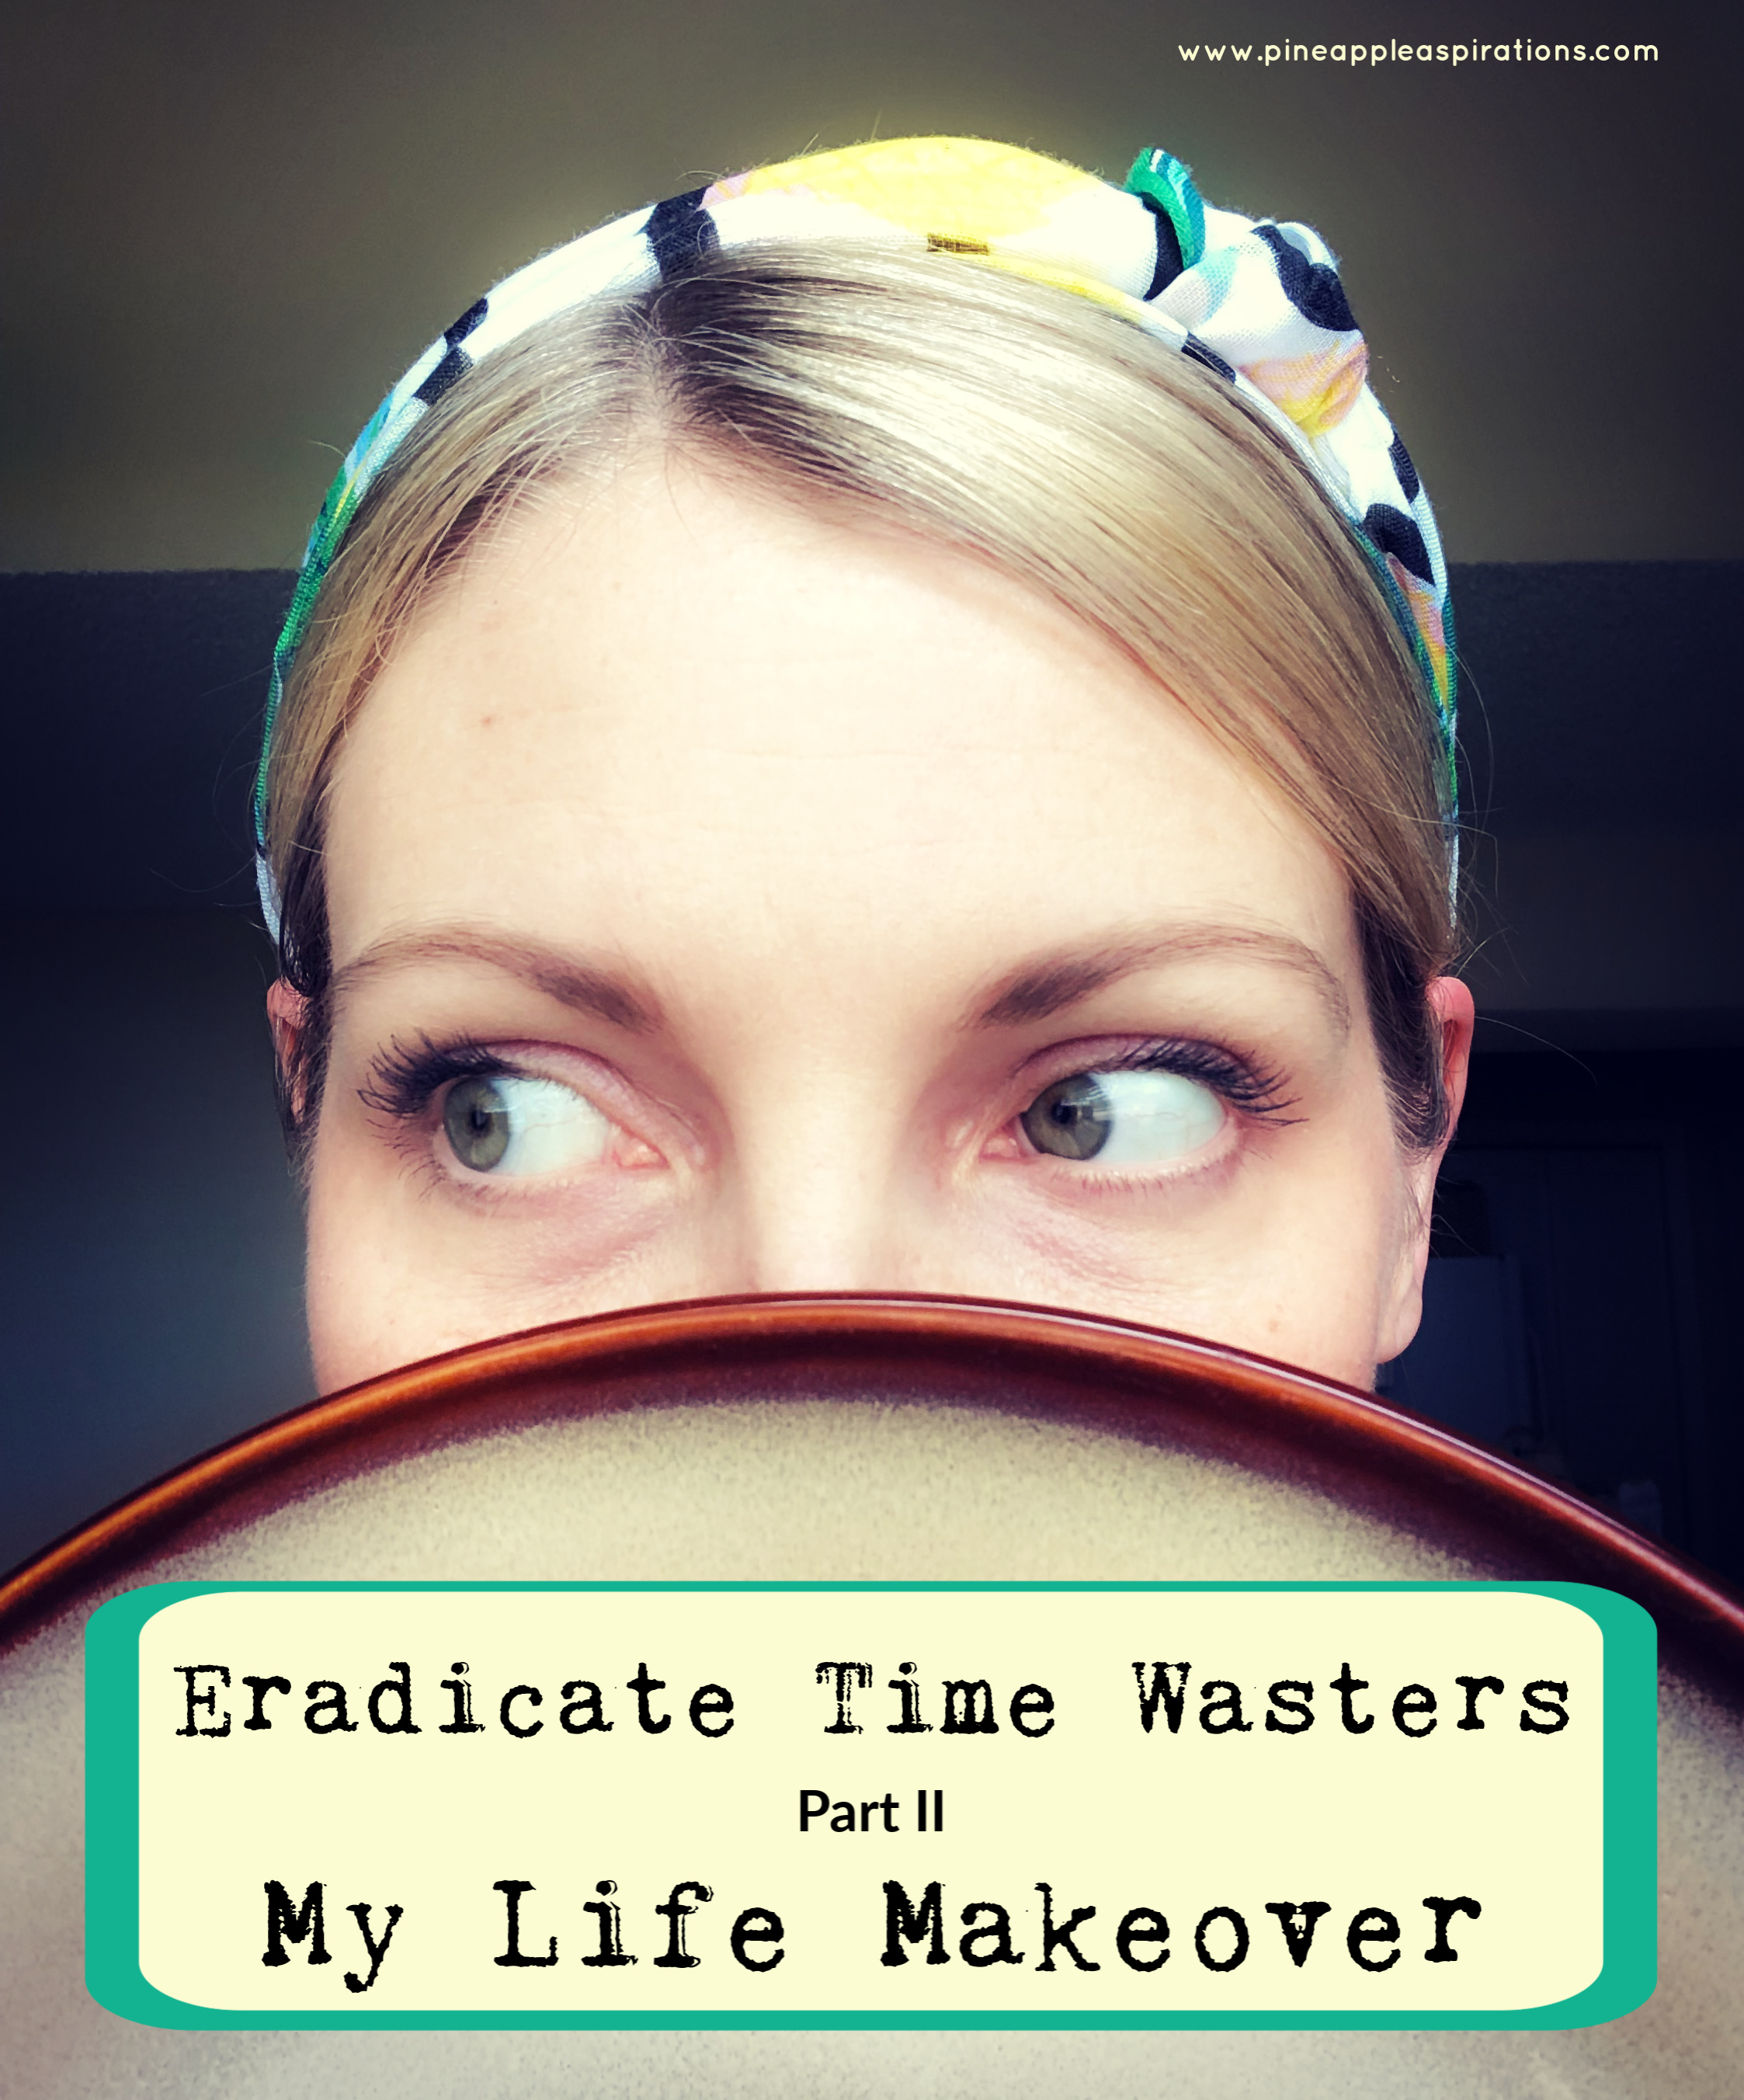 Eradicate Time Wasters